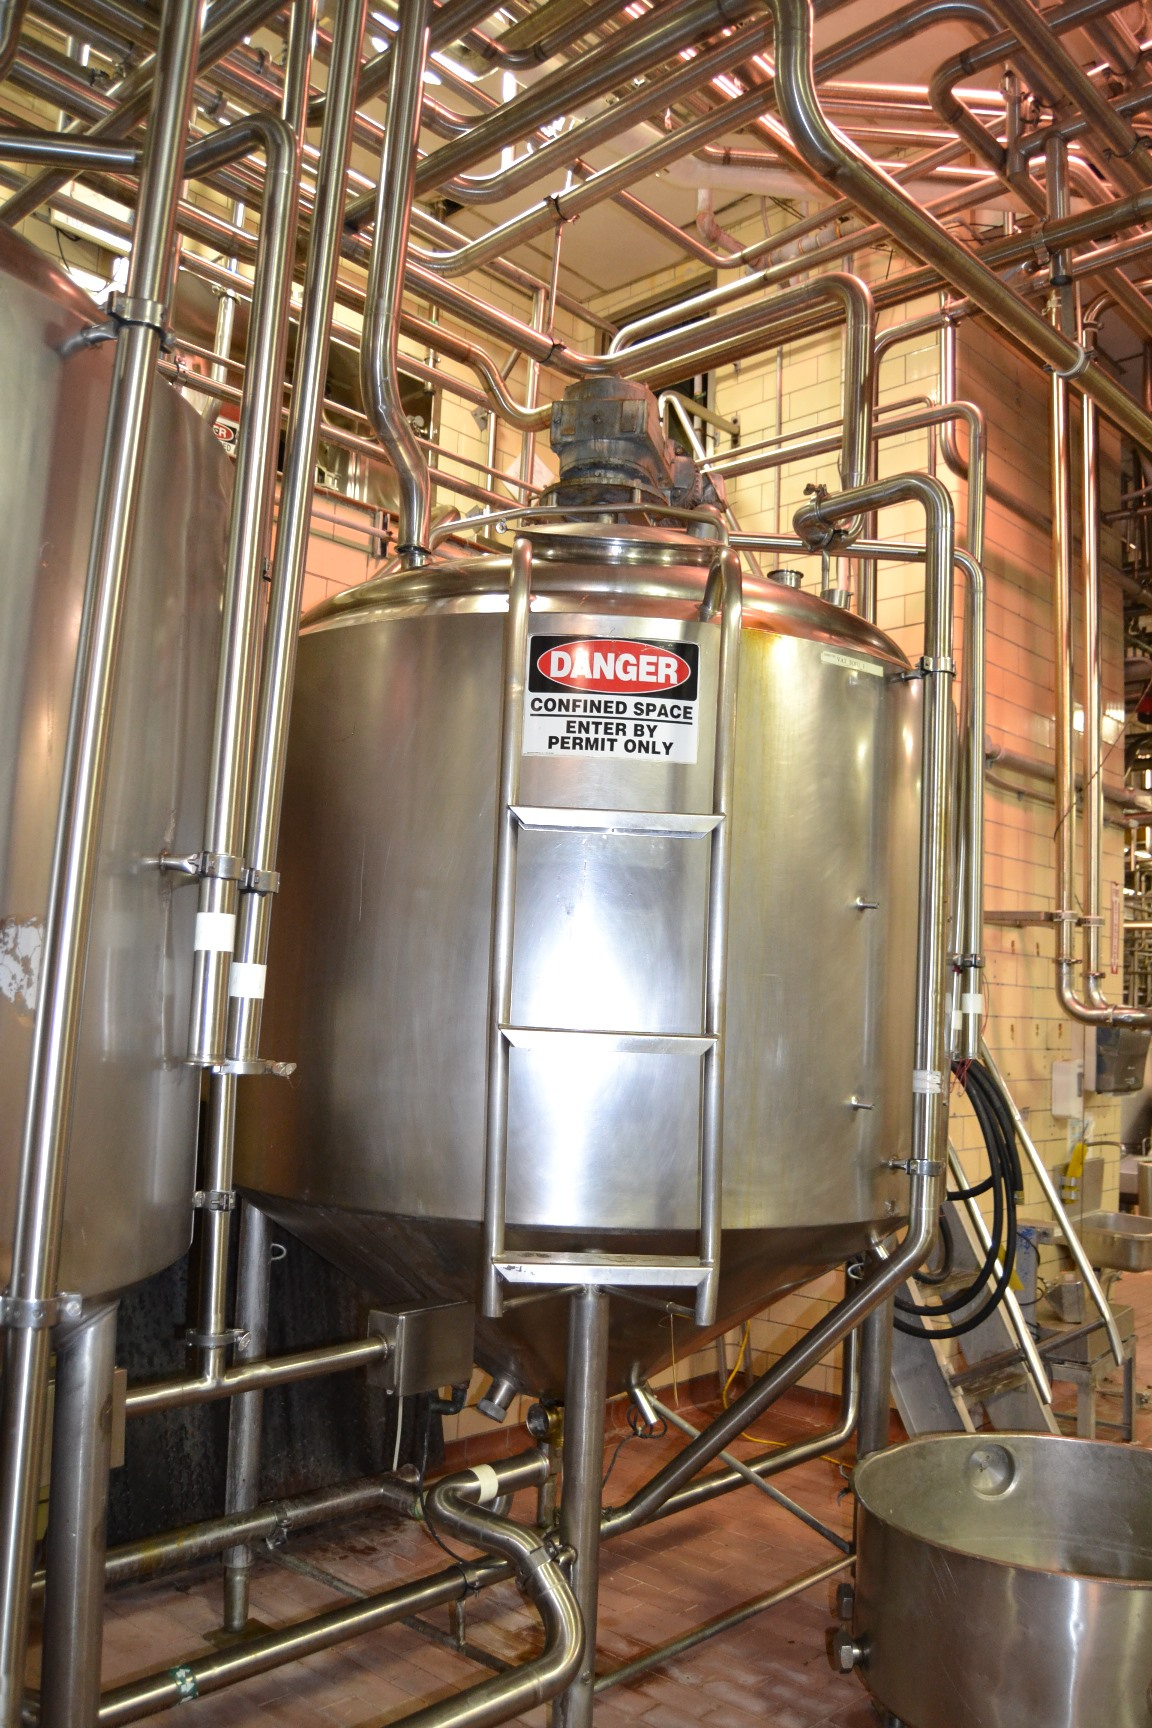 used 800 Gallon Crepaco Jacketed Mix tank/processor kettle with Sweep agitation. Jacket rated 50 PSI. Dish top and Cone Bottom. Drive is dual HP: 2 HP 1740 rpm, 230 volt/ 1HP, 870 rpm, 230 volt into Reliance gearbox rated 14/7 rpm output. Has baffle and spray ball. Approx. 7' OD x 10' OAH without mixer drive.  Last used in food plant in sanitary application.